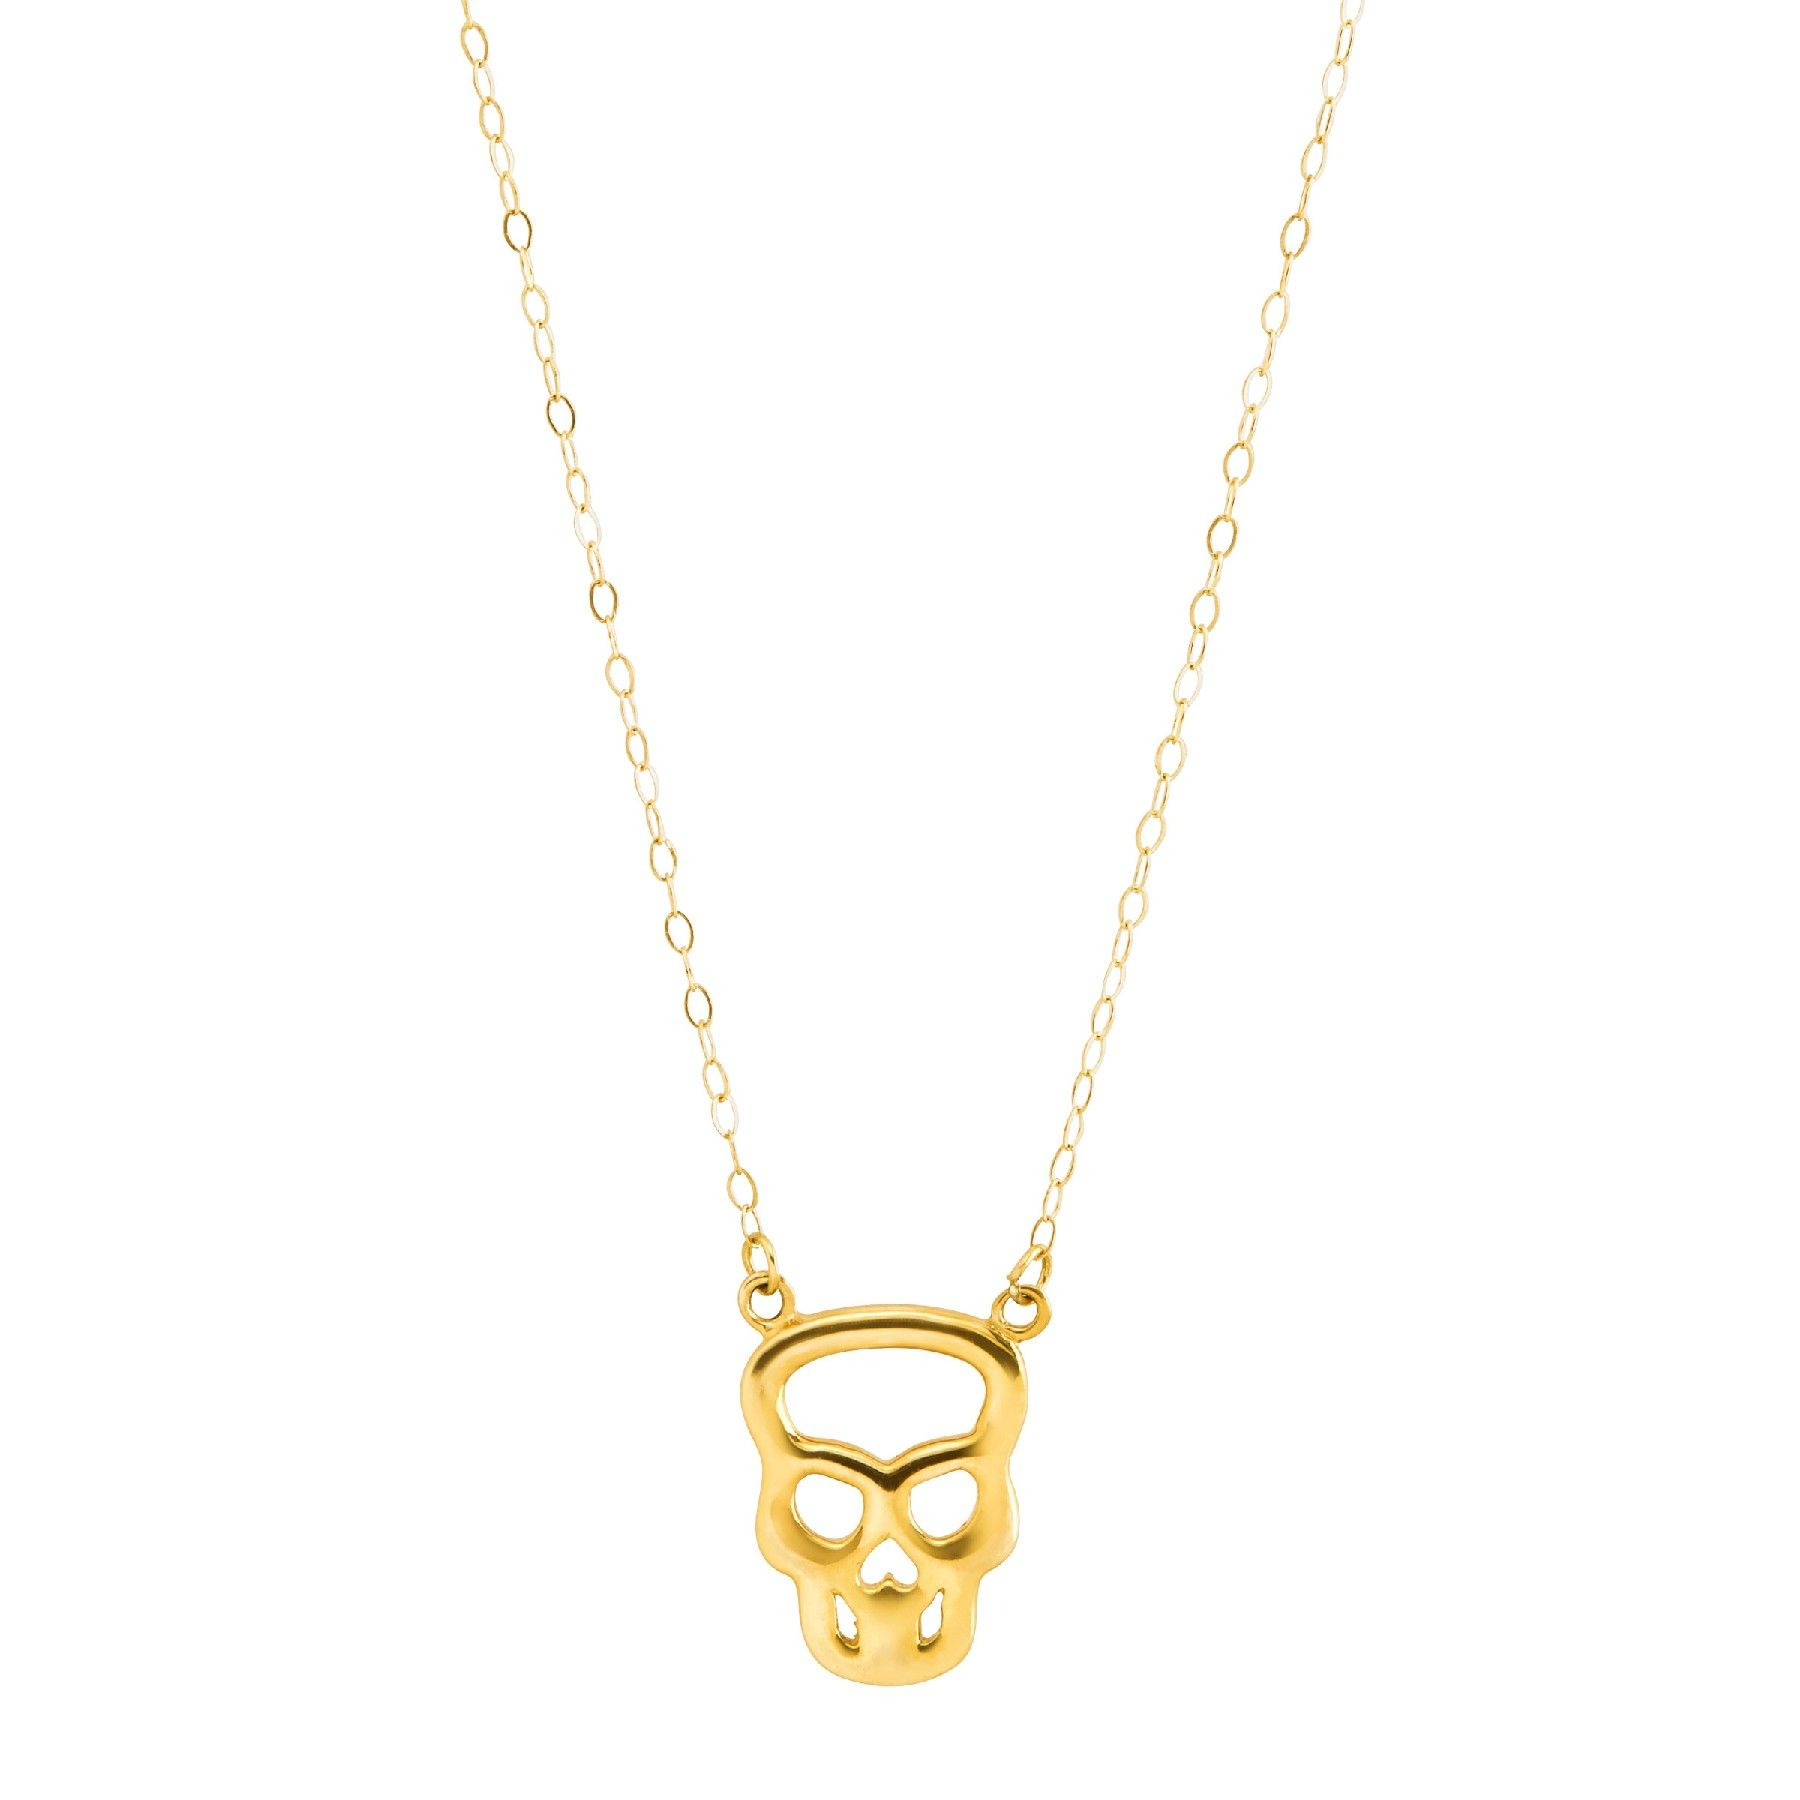 Eternity Gold Teeny Tiny Silhouette Skull Necklace In 10k Gold Teeny Tiny Silhouette Skull Necklace Jewelry Com